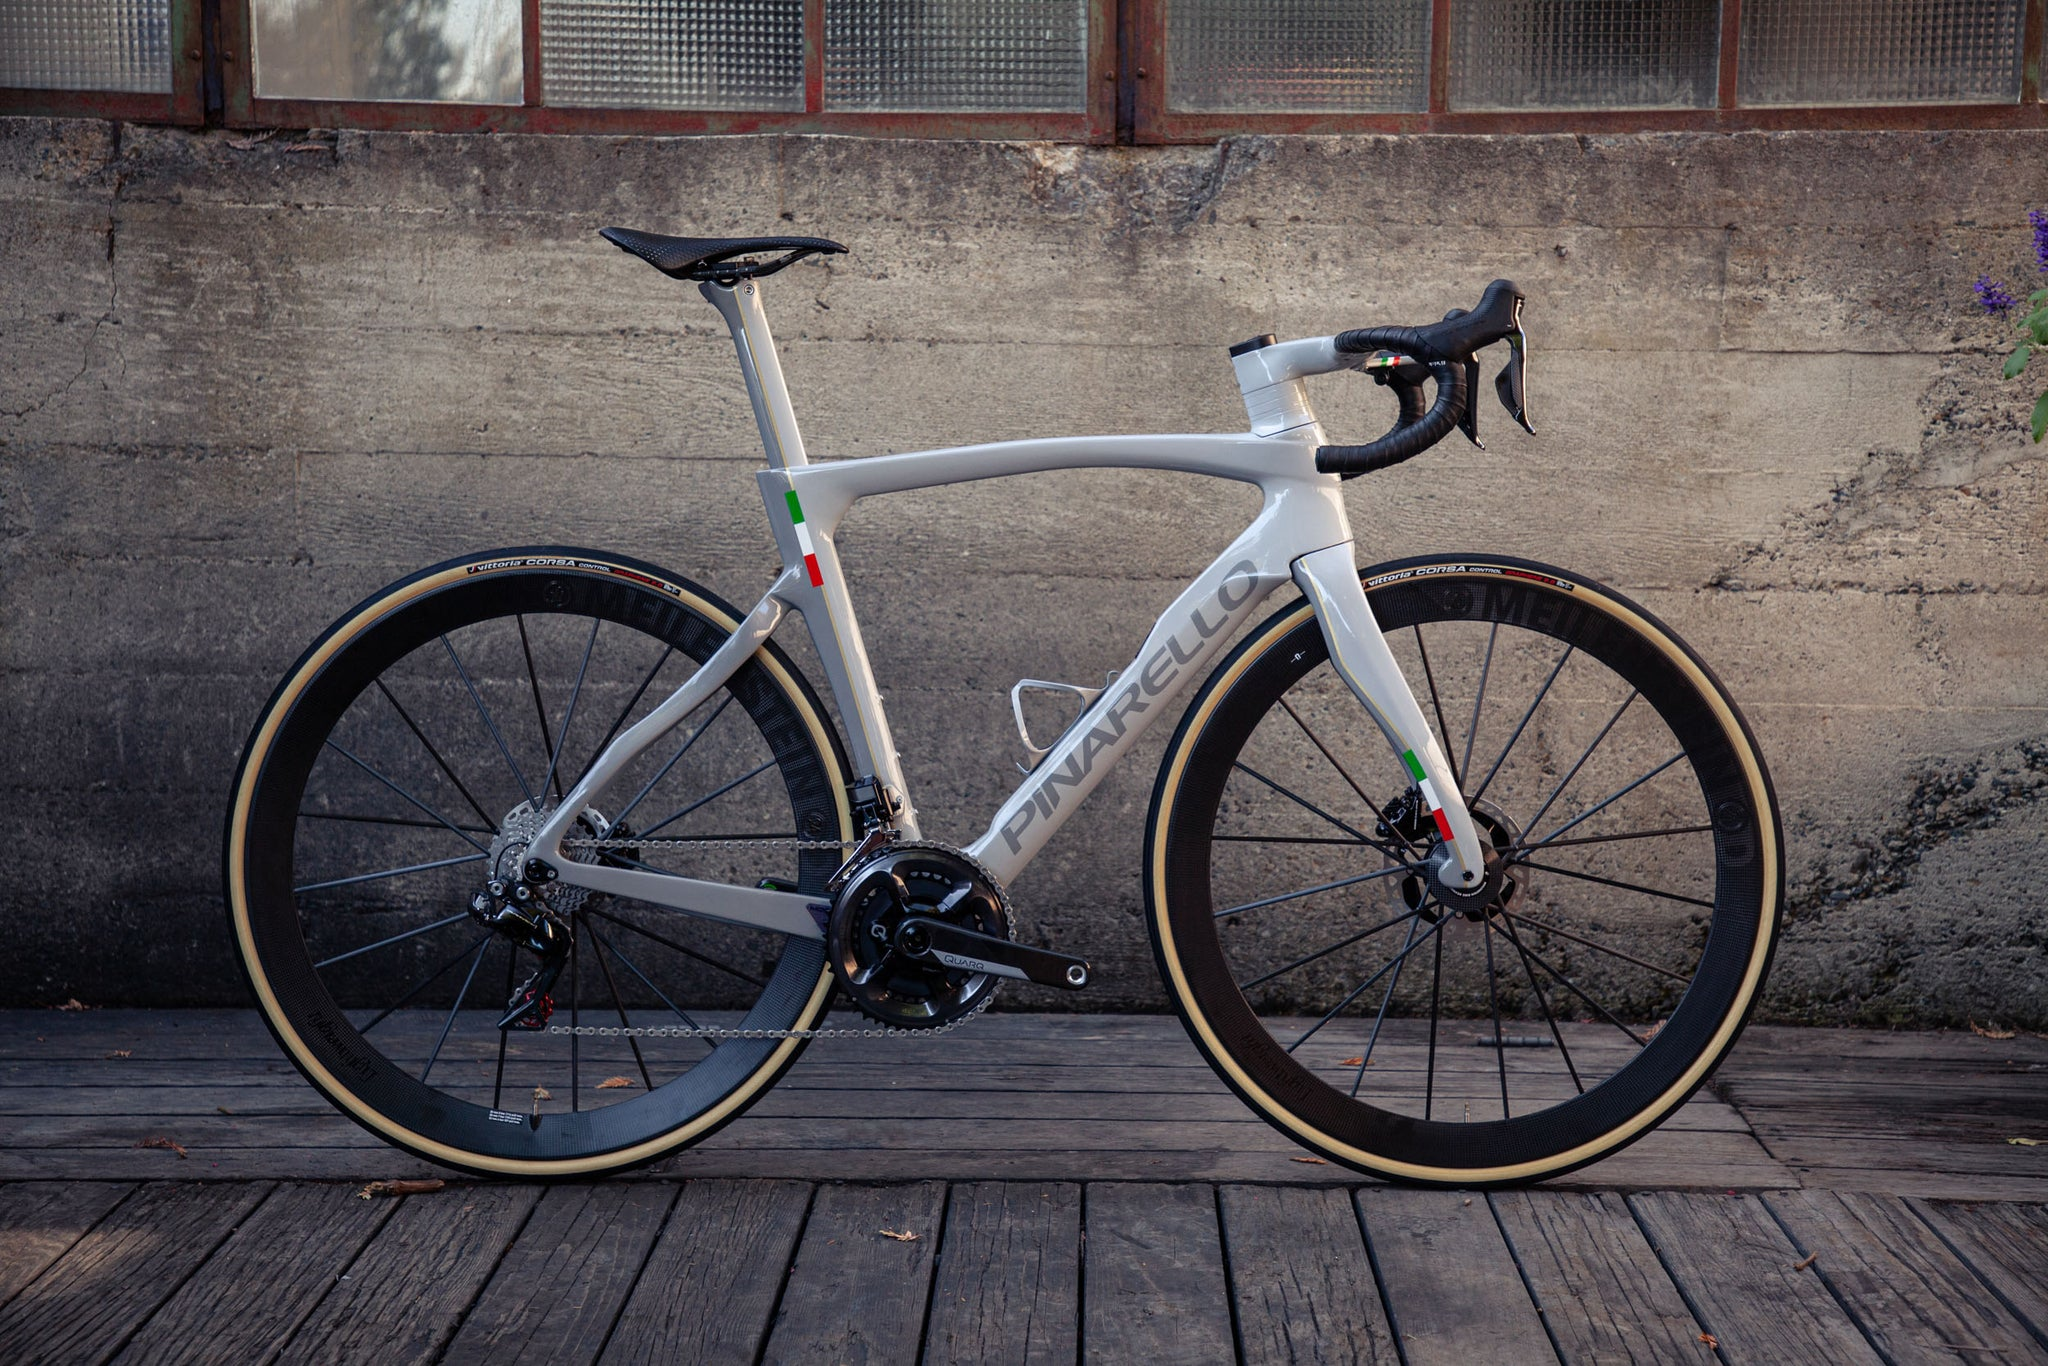 pianrello dogma f12 custom paint velocolour 1